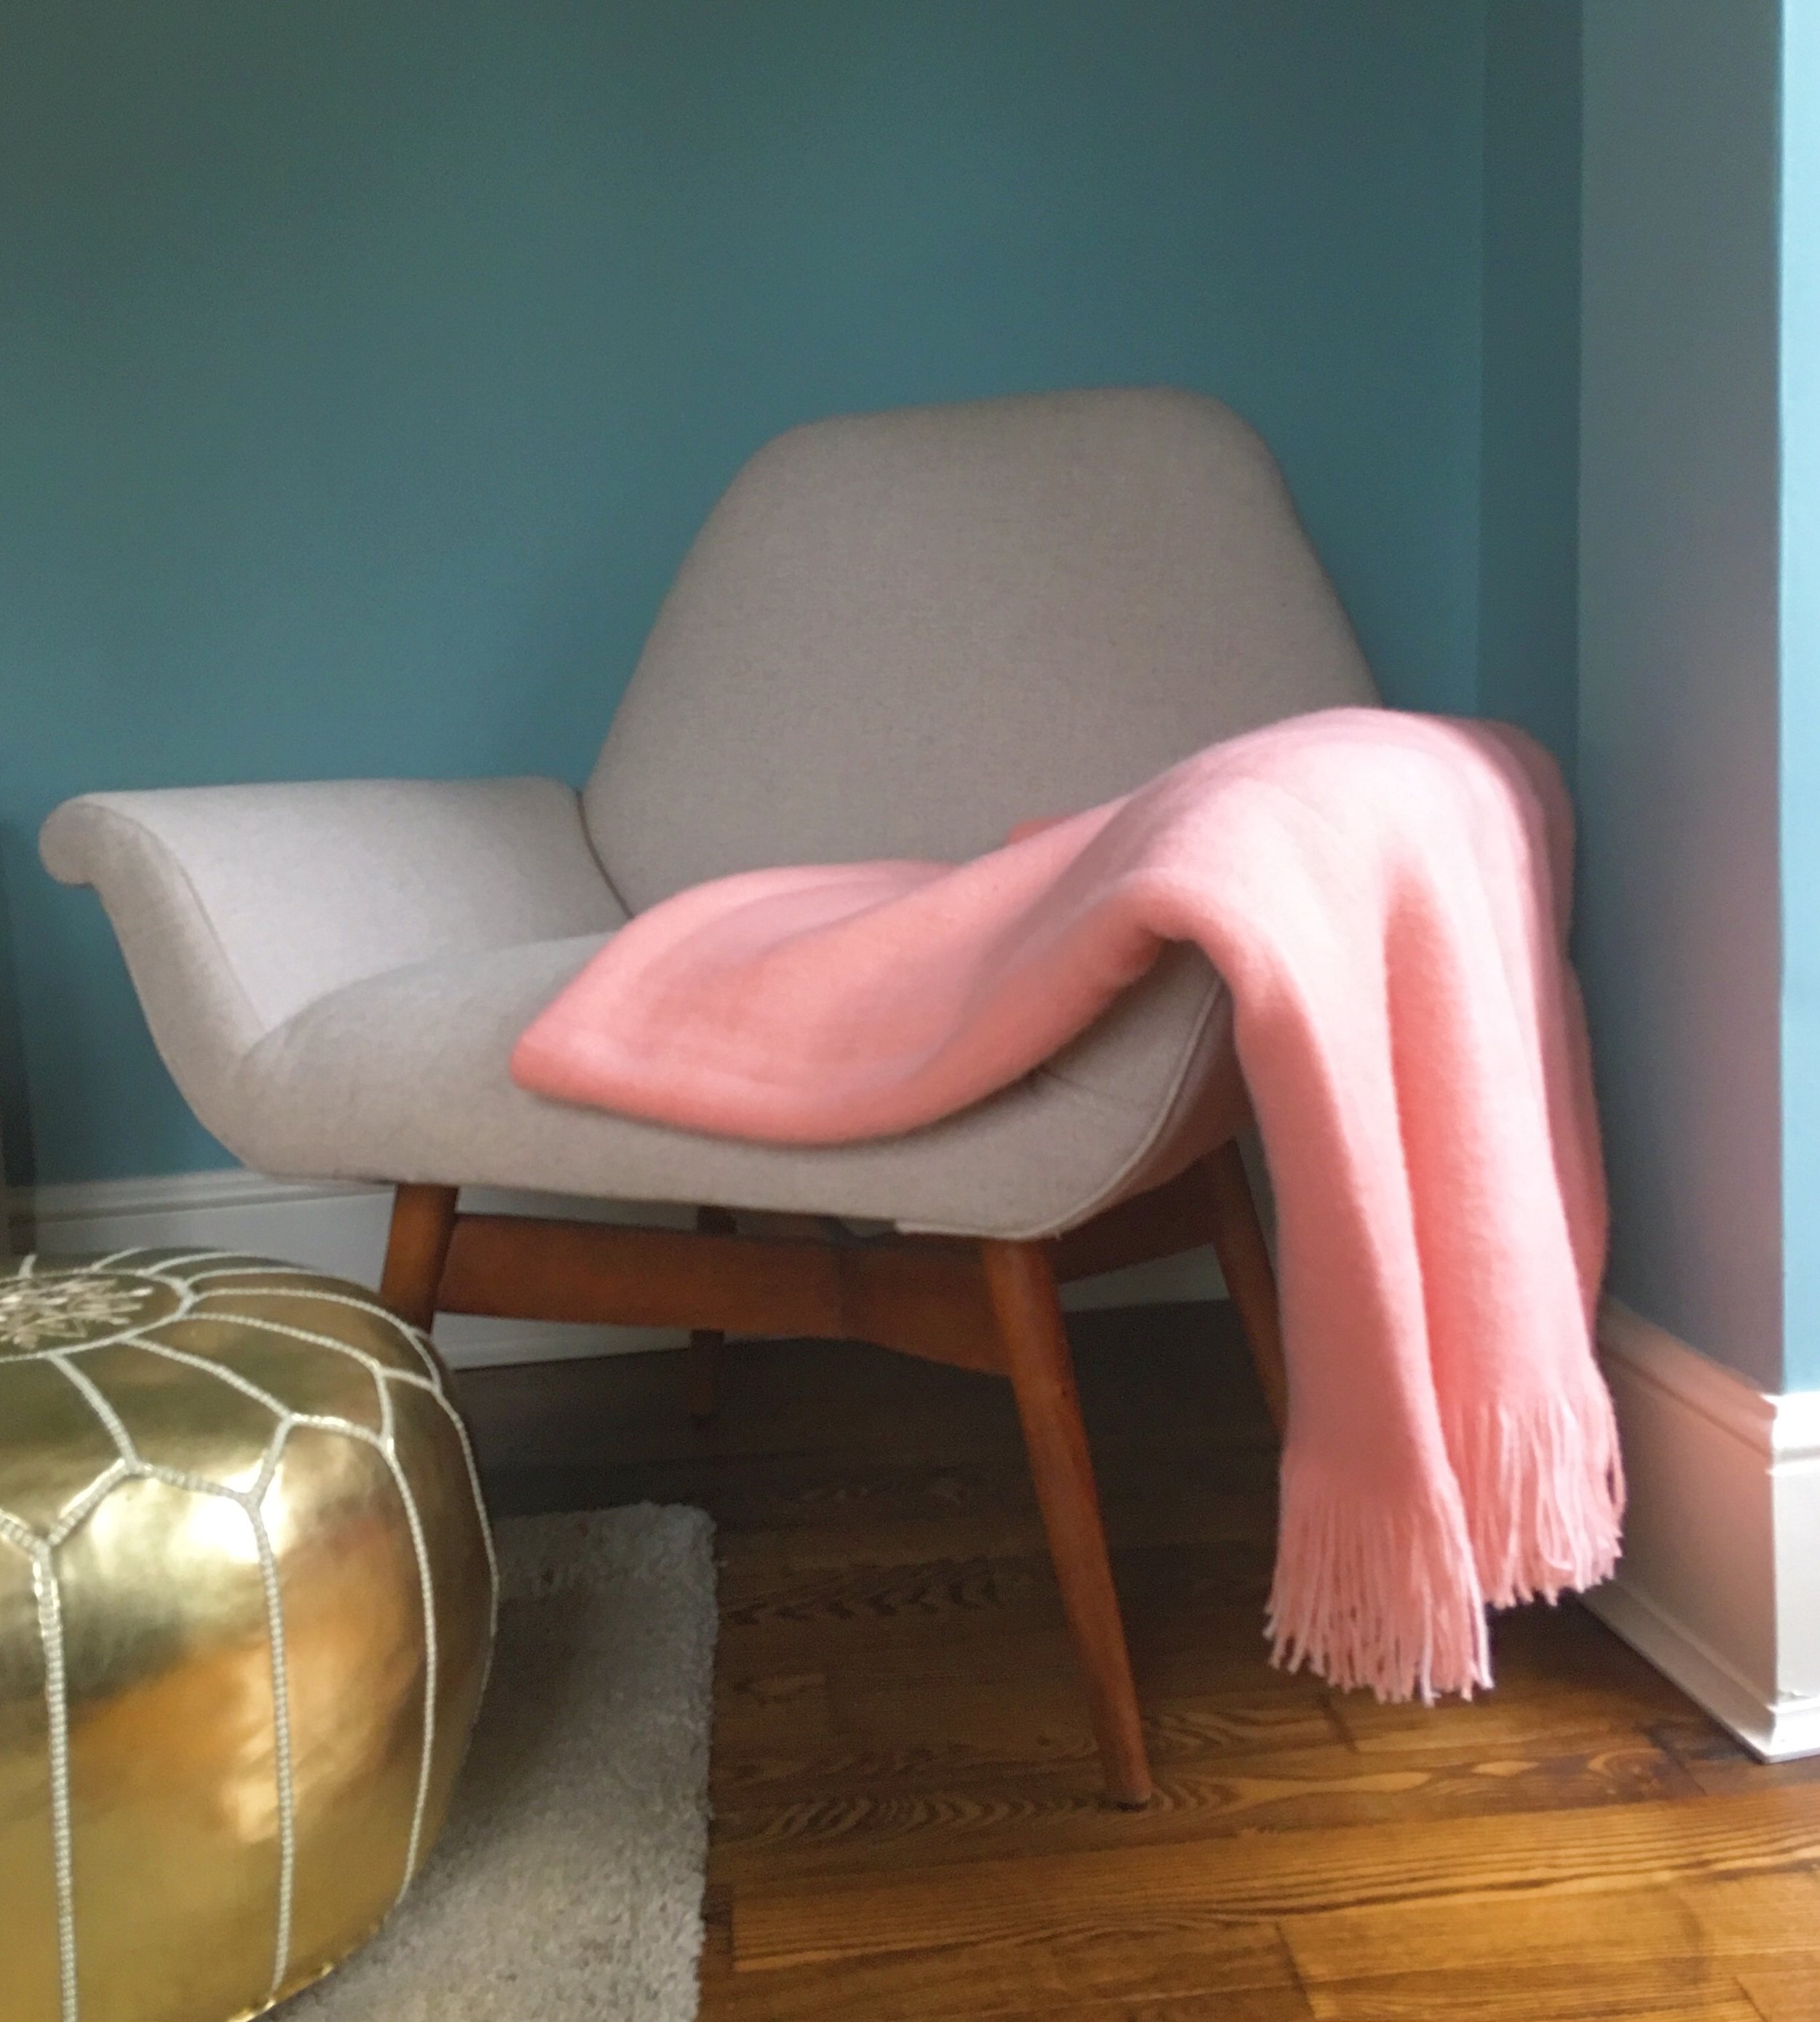 My pink throw at home complements my blue walls in my living room.